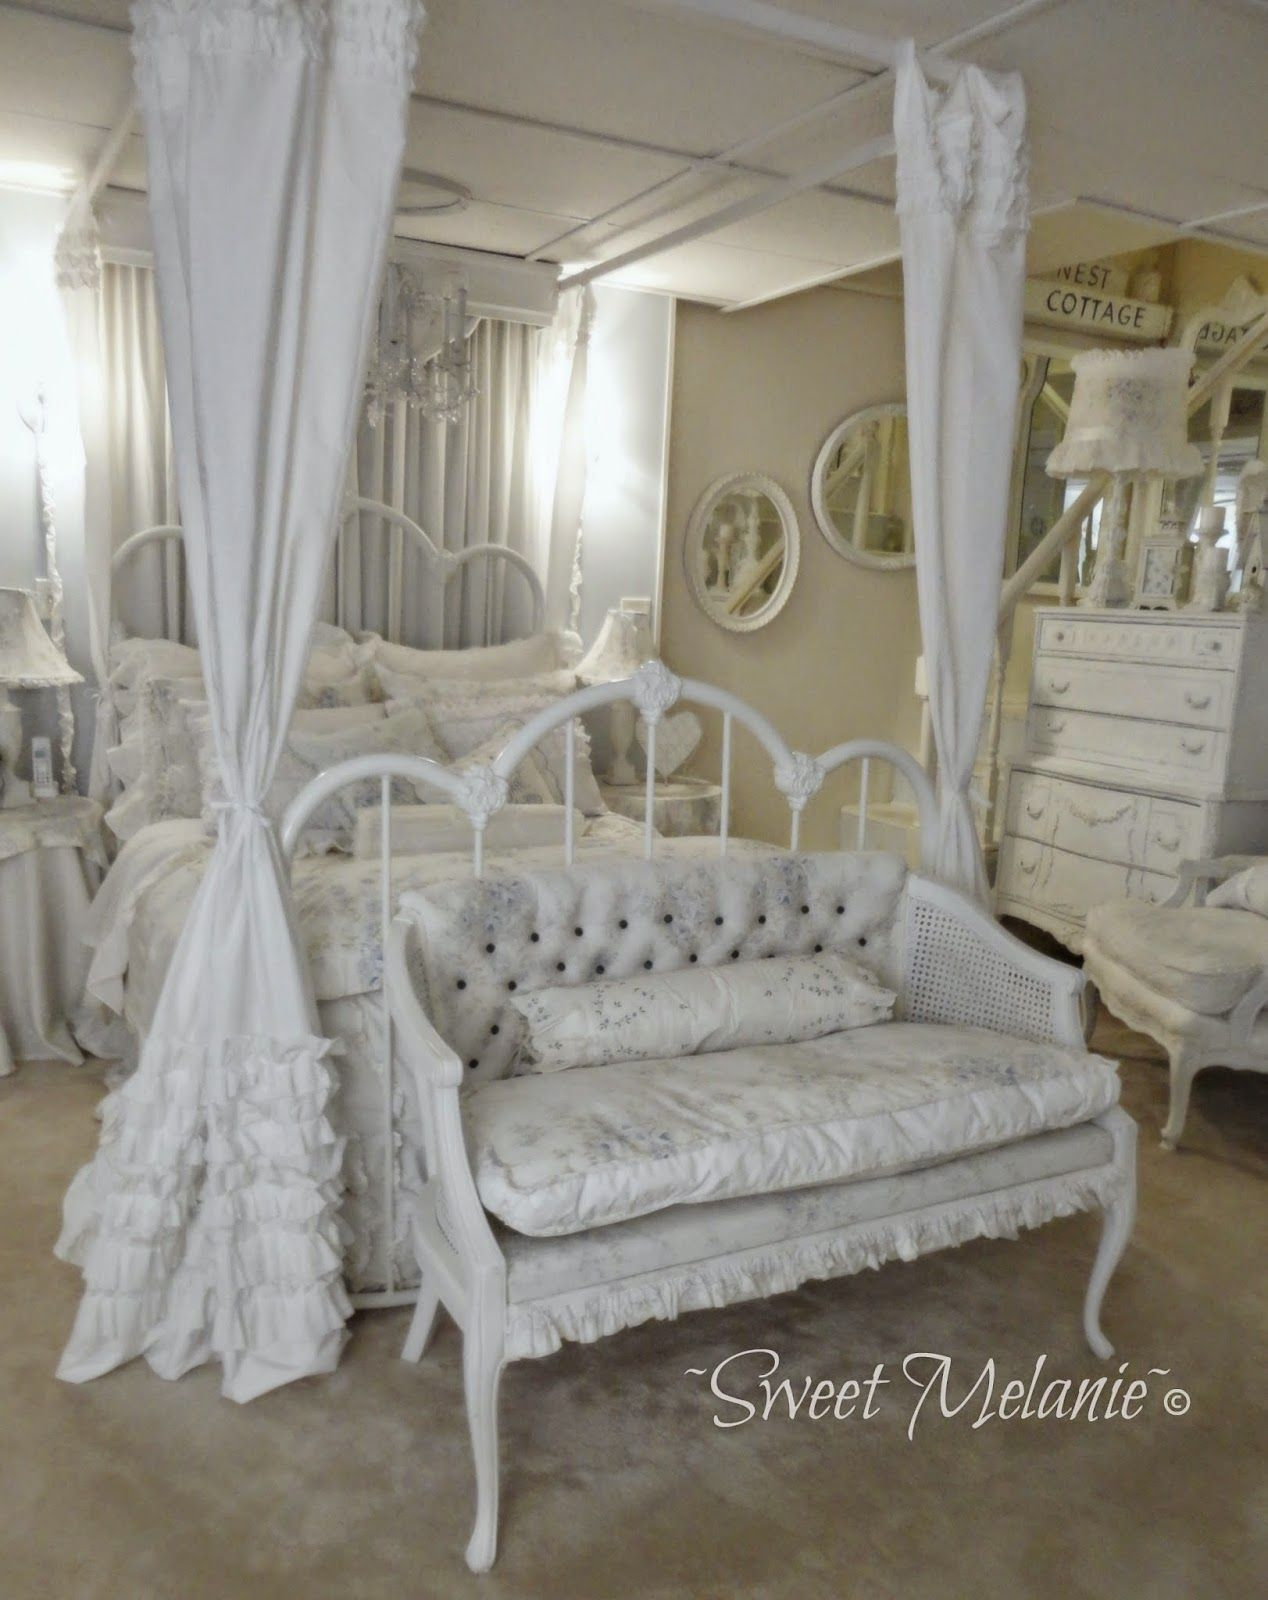 A Little Rearranging | Shabby chic bedrooms, Bedroom decor ...